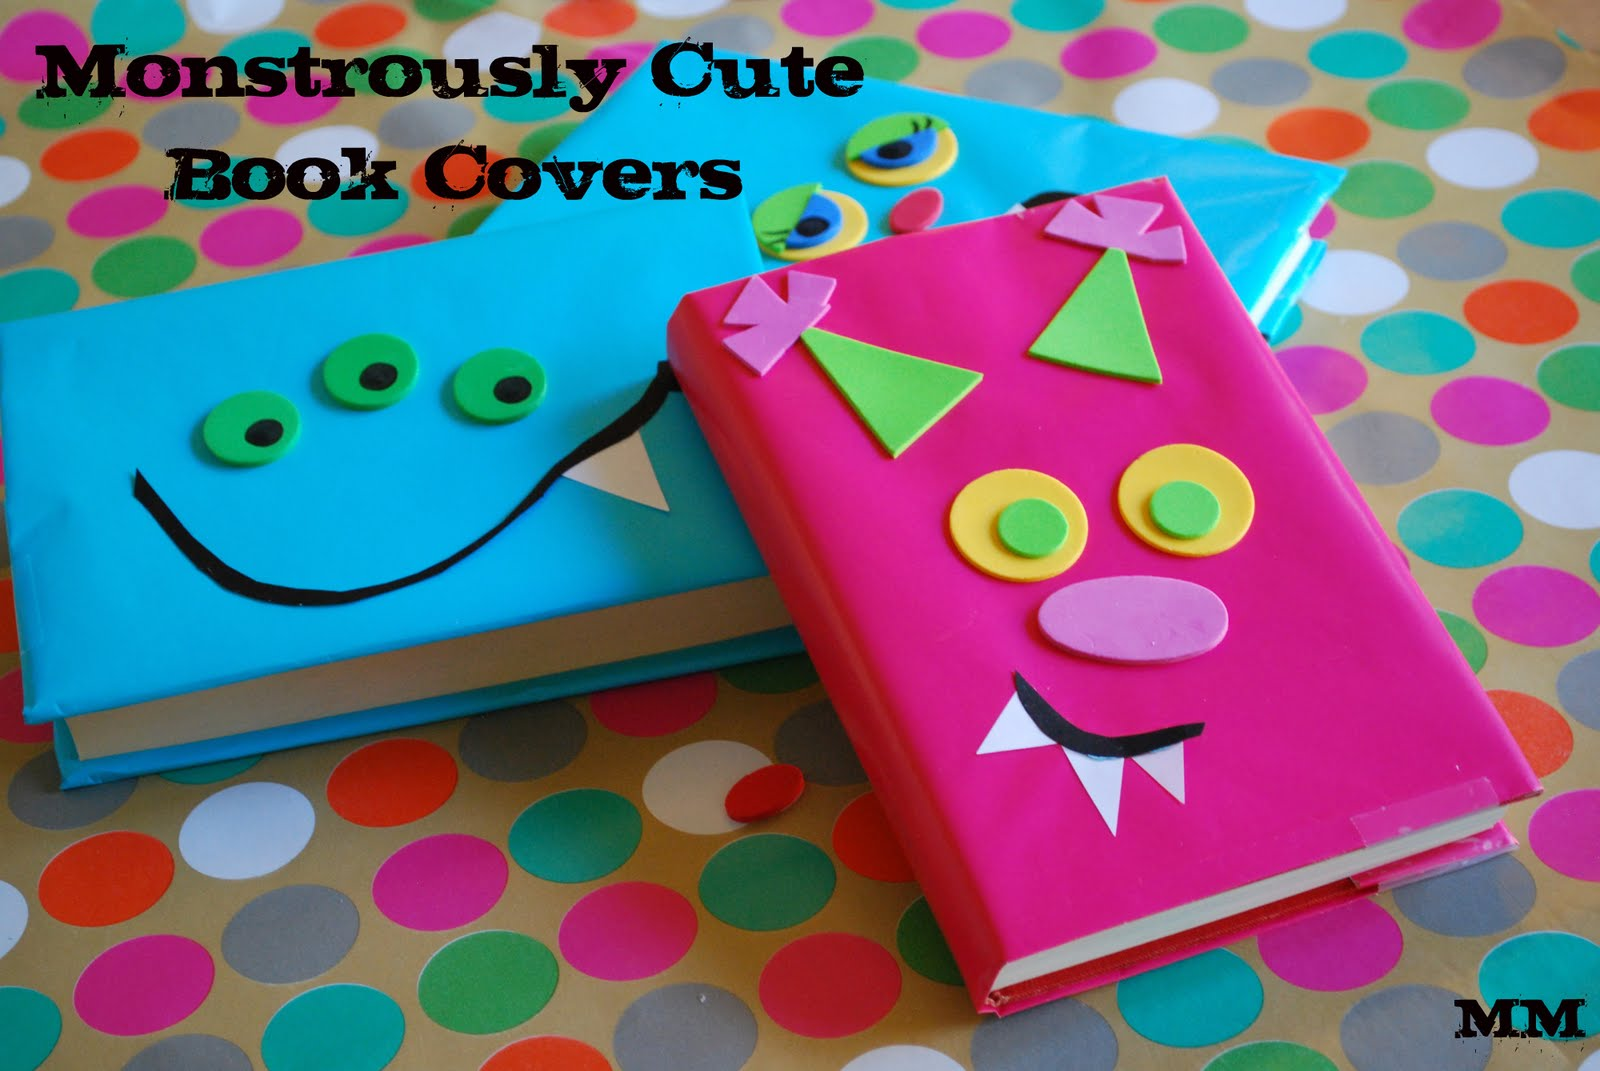 School Project Book Cover ~ Pics for gt creative ideas book covers